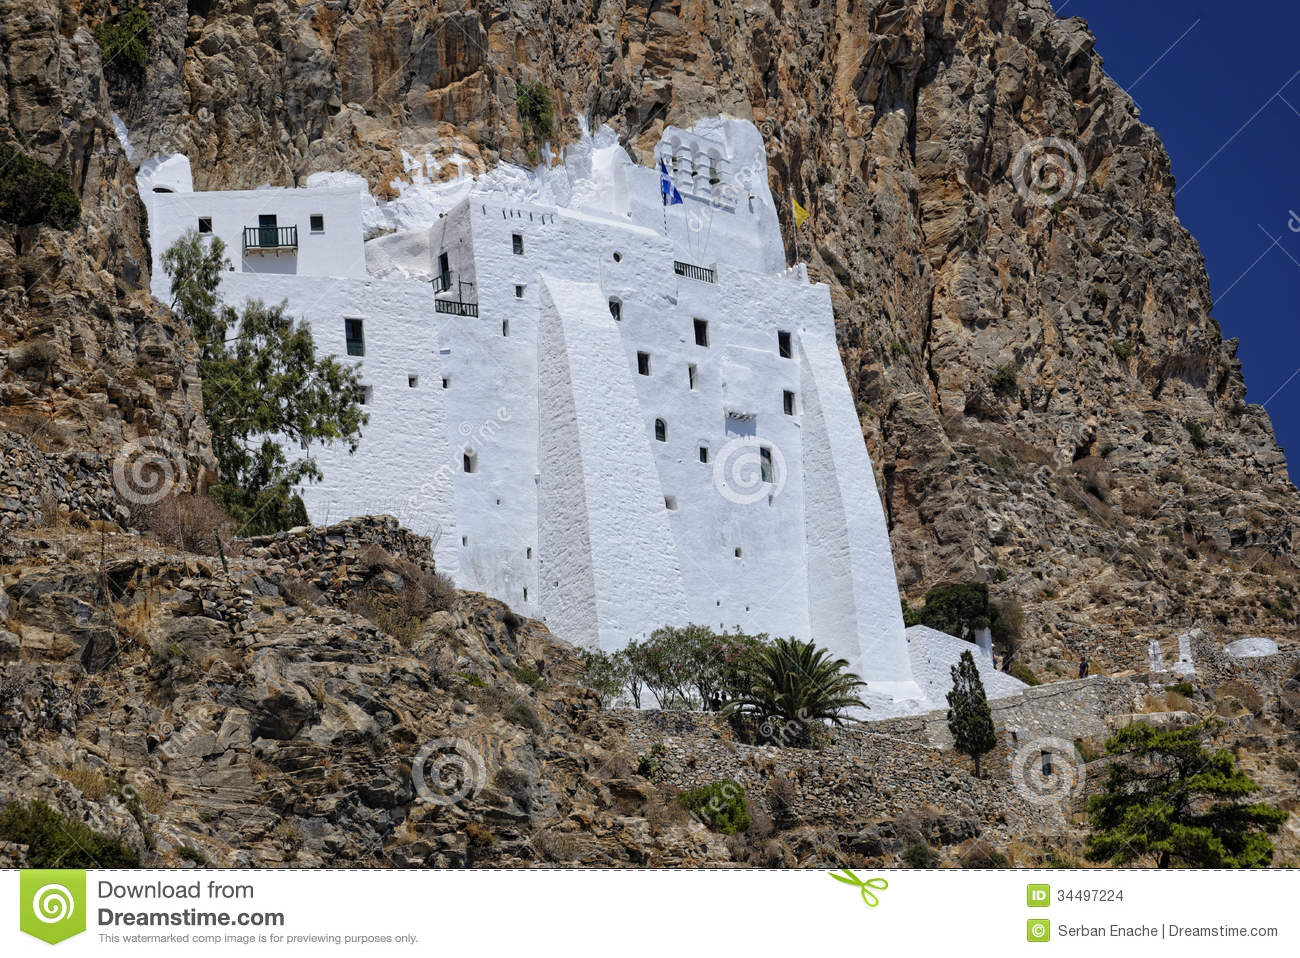 Stock Illustration Castle Design Flat Building Medieval Tower Fortress Architecture Palace Kingdom Vector Illustration Image70087397 together with Stock Images Ancient Hillside Monastery Brilliant White Historic Panagia Hozoviotissa Along Cliffs Amorgos Island Greece Image34497224 further Seamless Stone Texture Vector 15652566 likewise A Visit To The Corvin Castle Hunyadi Castle In Transylvania as well Stock Photo Ginger Queen Near Castle Red Haired Woman Green Medieval Dress Image95830314. on medieval castle plans